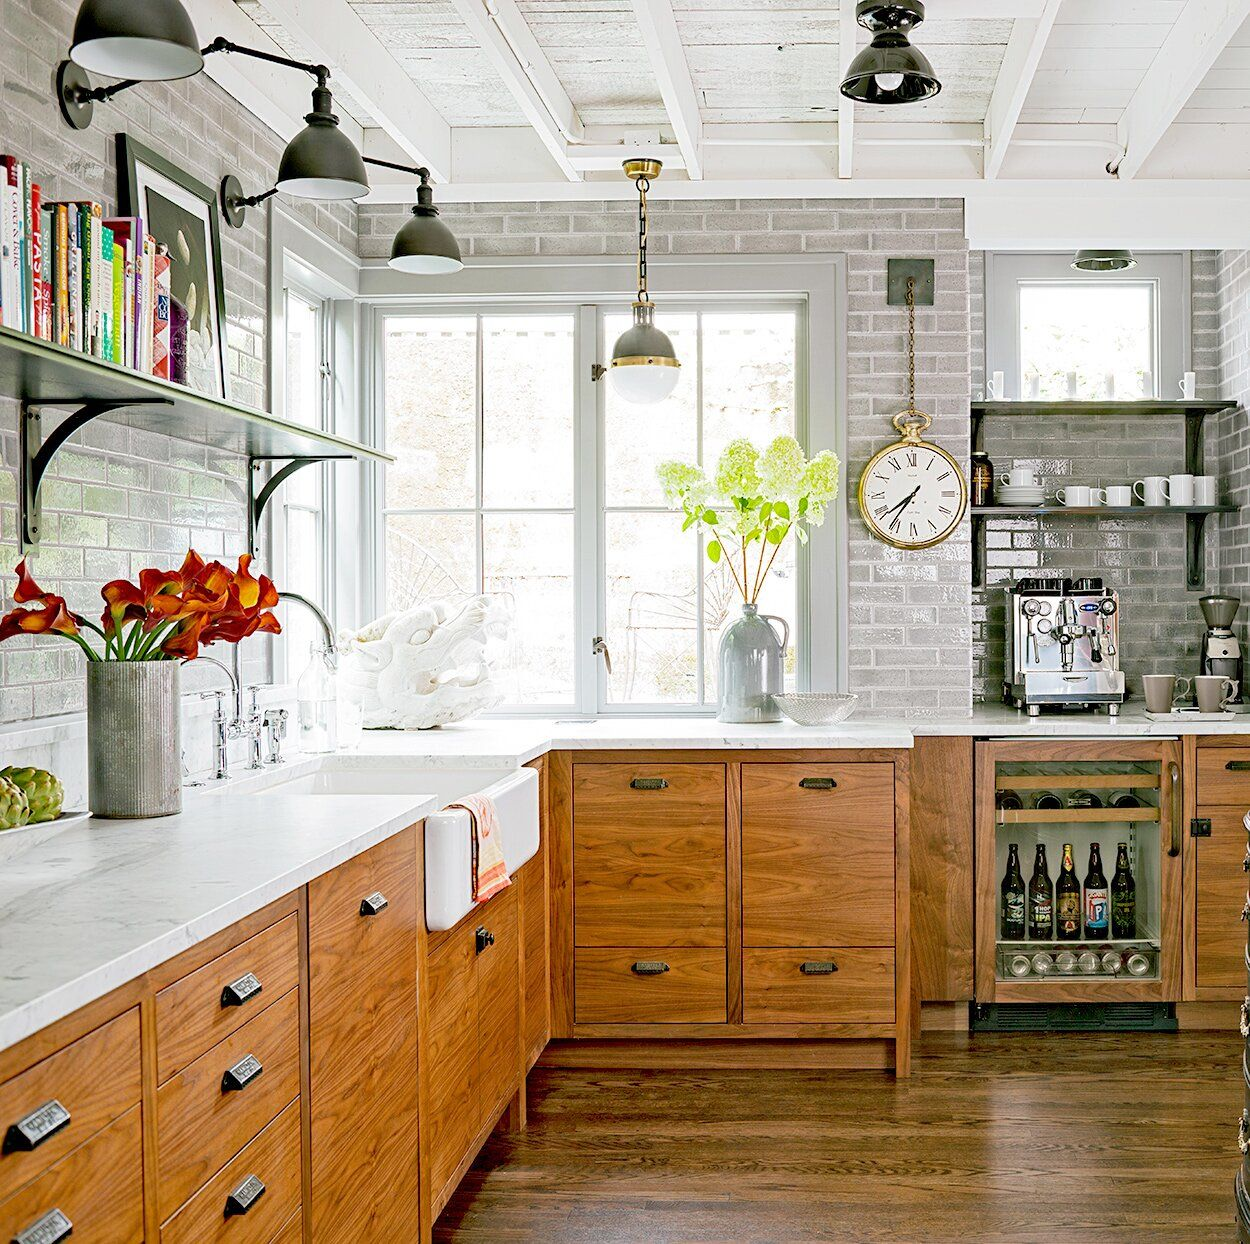 19 Budget Friendly Home Renovation Ideas For Every Room In Your House In 2020 Kitchen Ceiling Design Home Decor Kitchen Wood Kitchen Cabinets